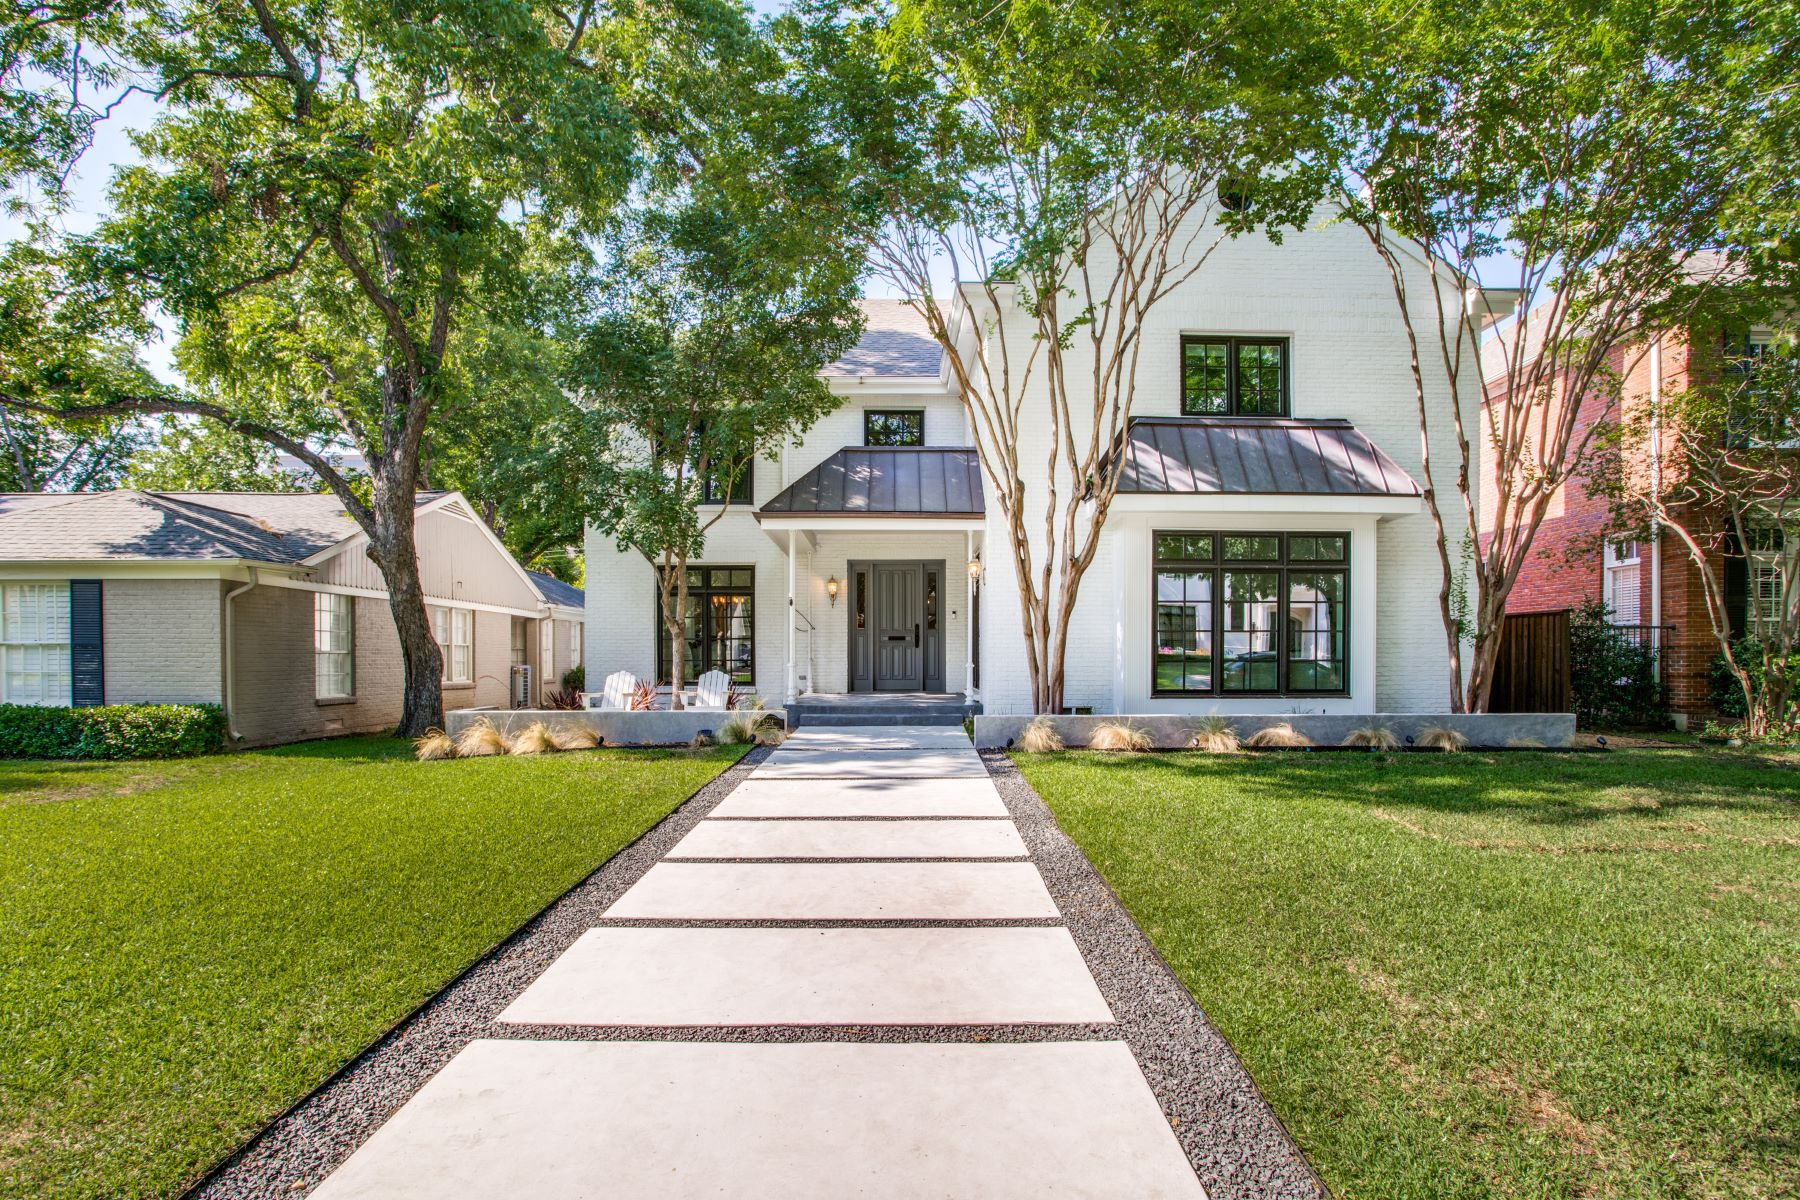 Single Family Homes for Sale at University Park Traditional 4224 Caruth Boulevard University Park, Texas 75225 United States